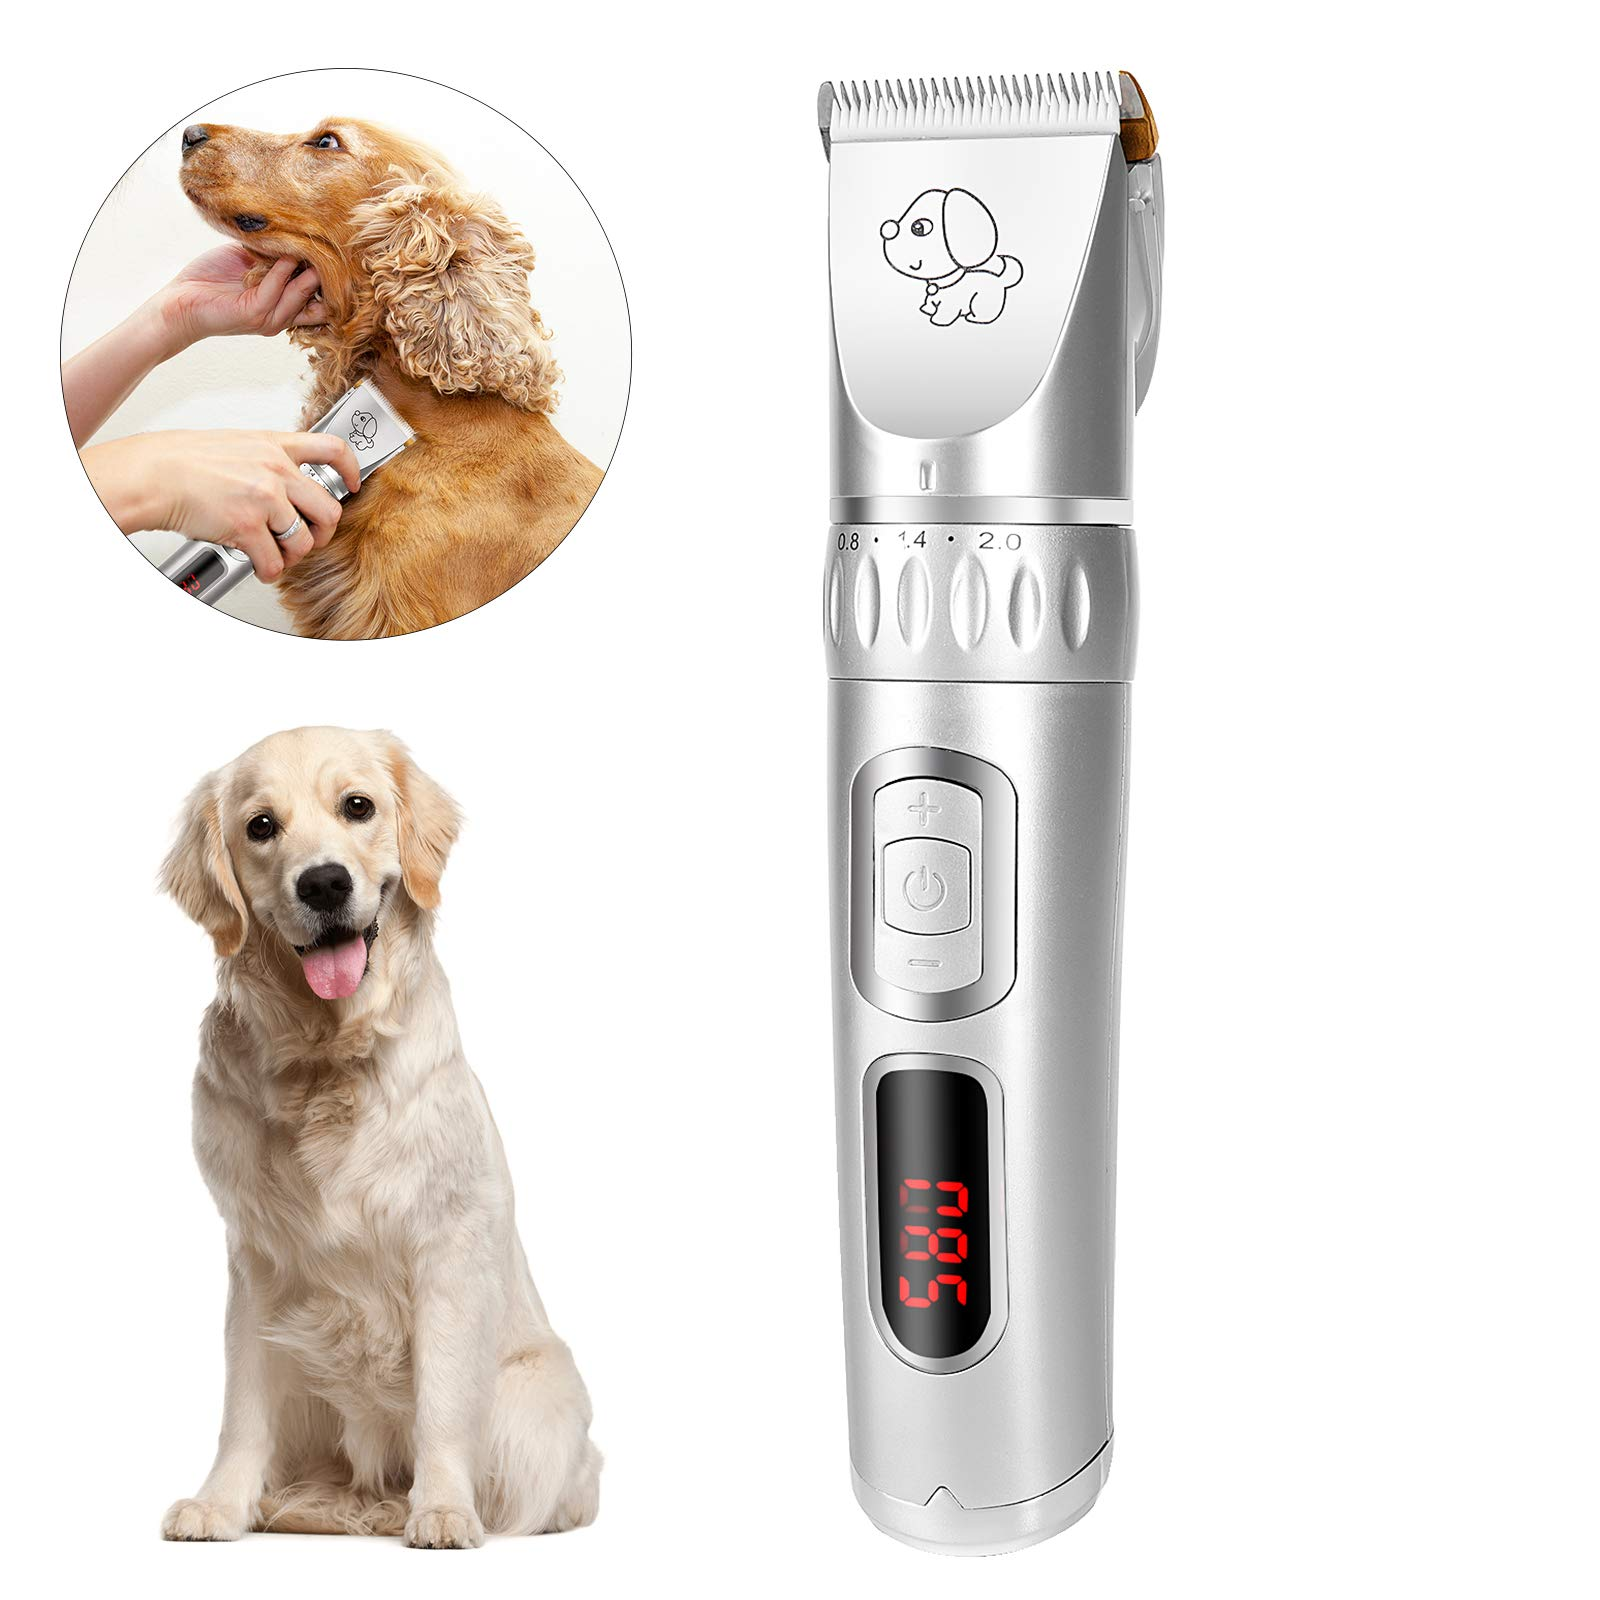 Zoneyee Pet Grooming Clipper Kits, Low Noise for Dogs and Cats, Rechargeable Cordless Electric Haircut Set for Pets